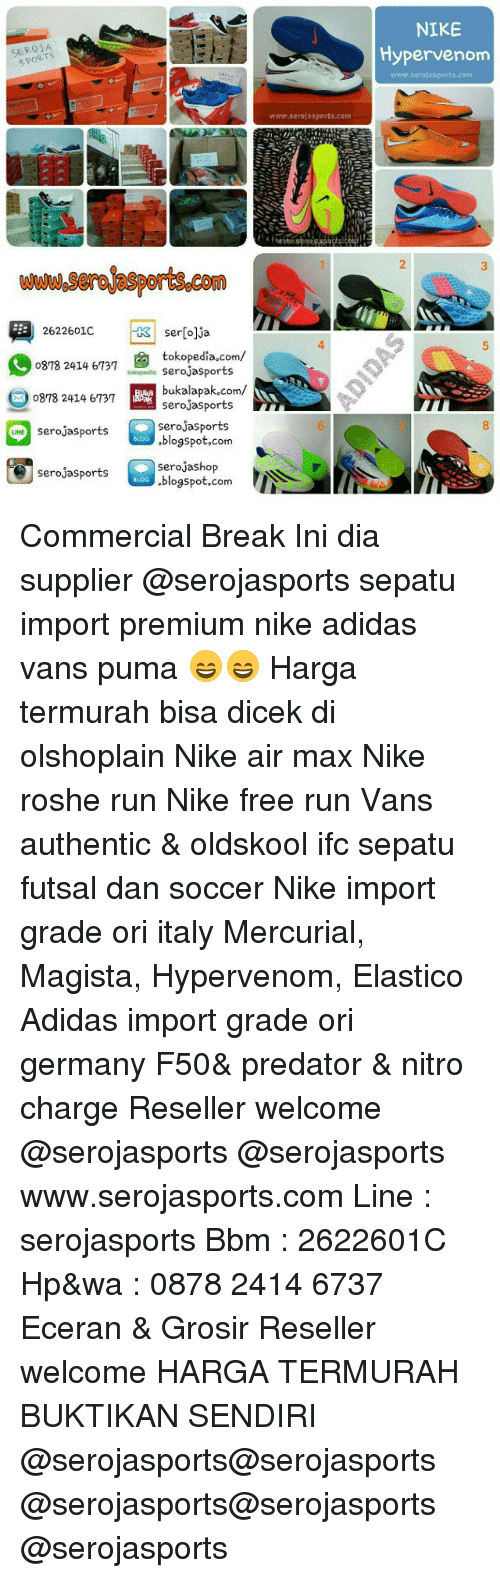 Ser 01 A 2622601c Seroja Tokopediacom 0878 2414 6737 Sports Sepatu Futsal Import Nike Adidas And Run